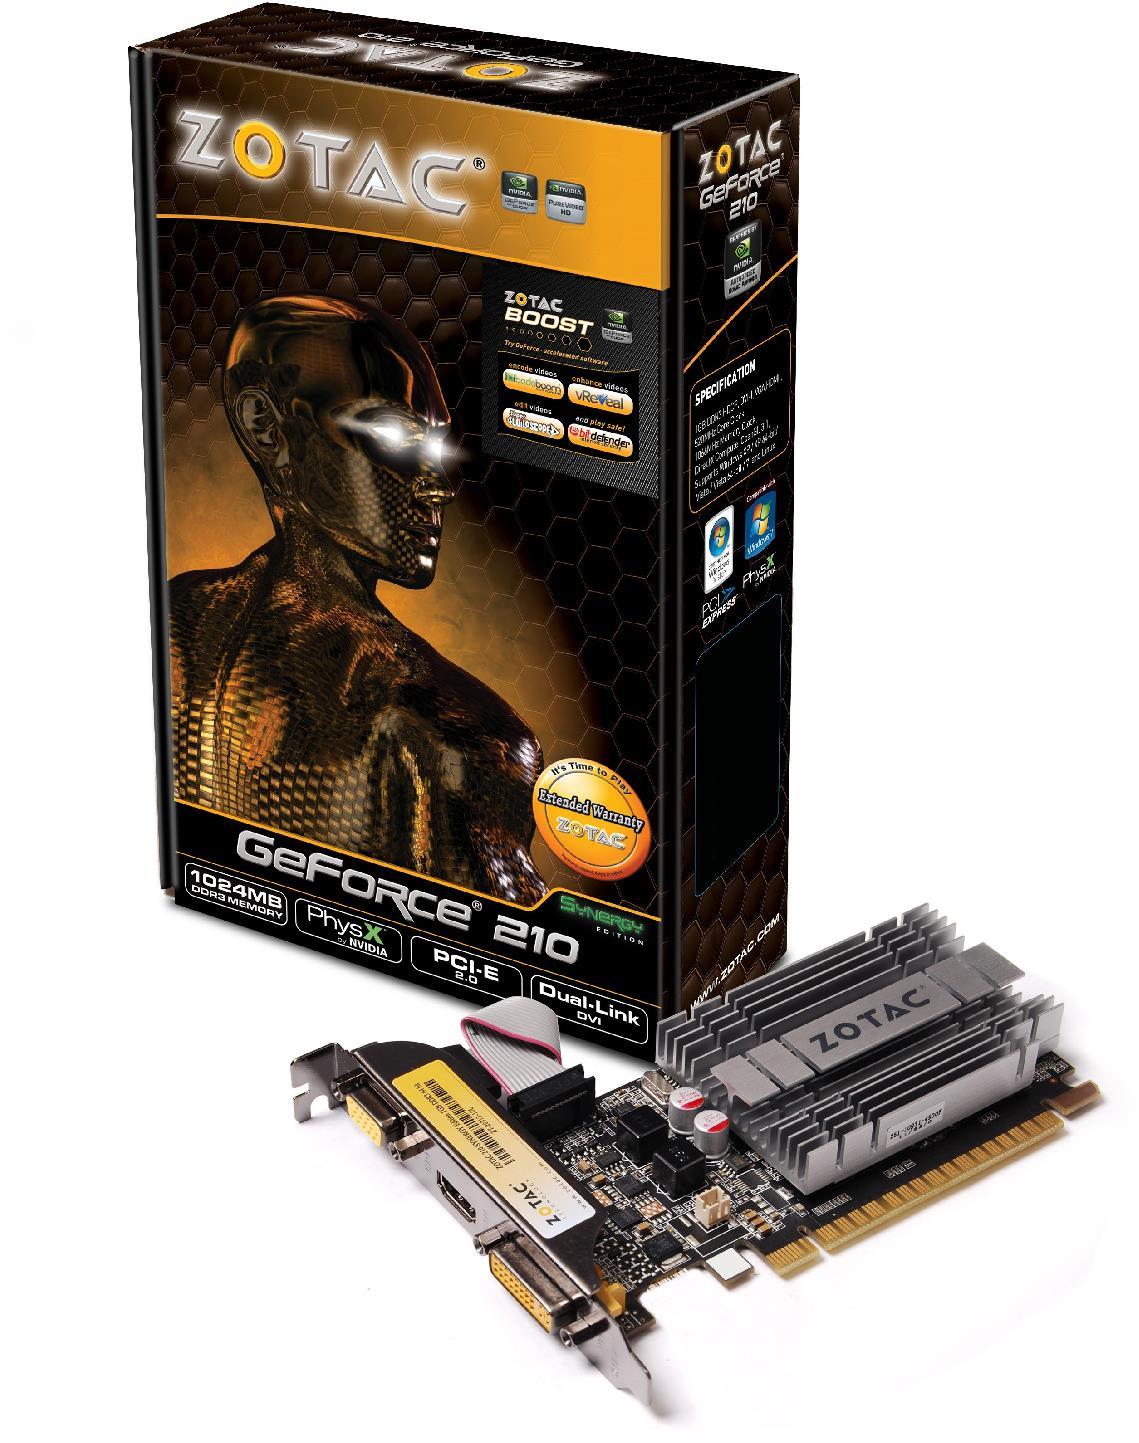 Zotac GeForce 210 Synergy Edition PCI-Express Graphics Card